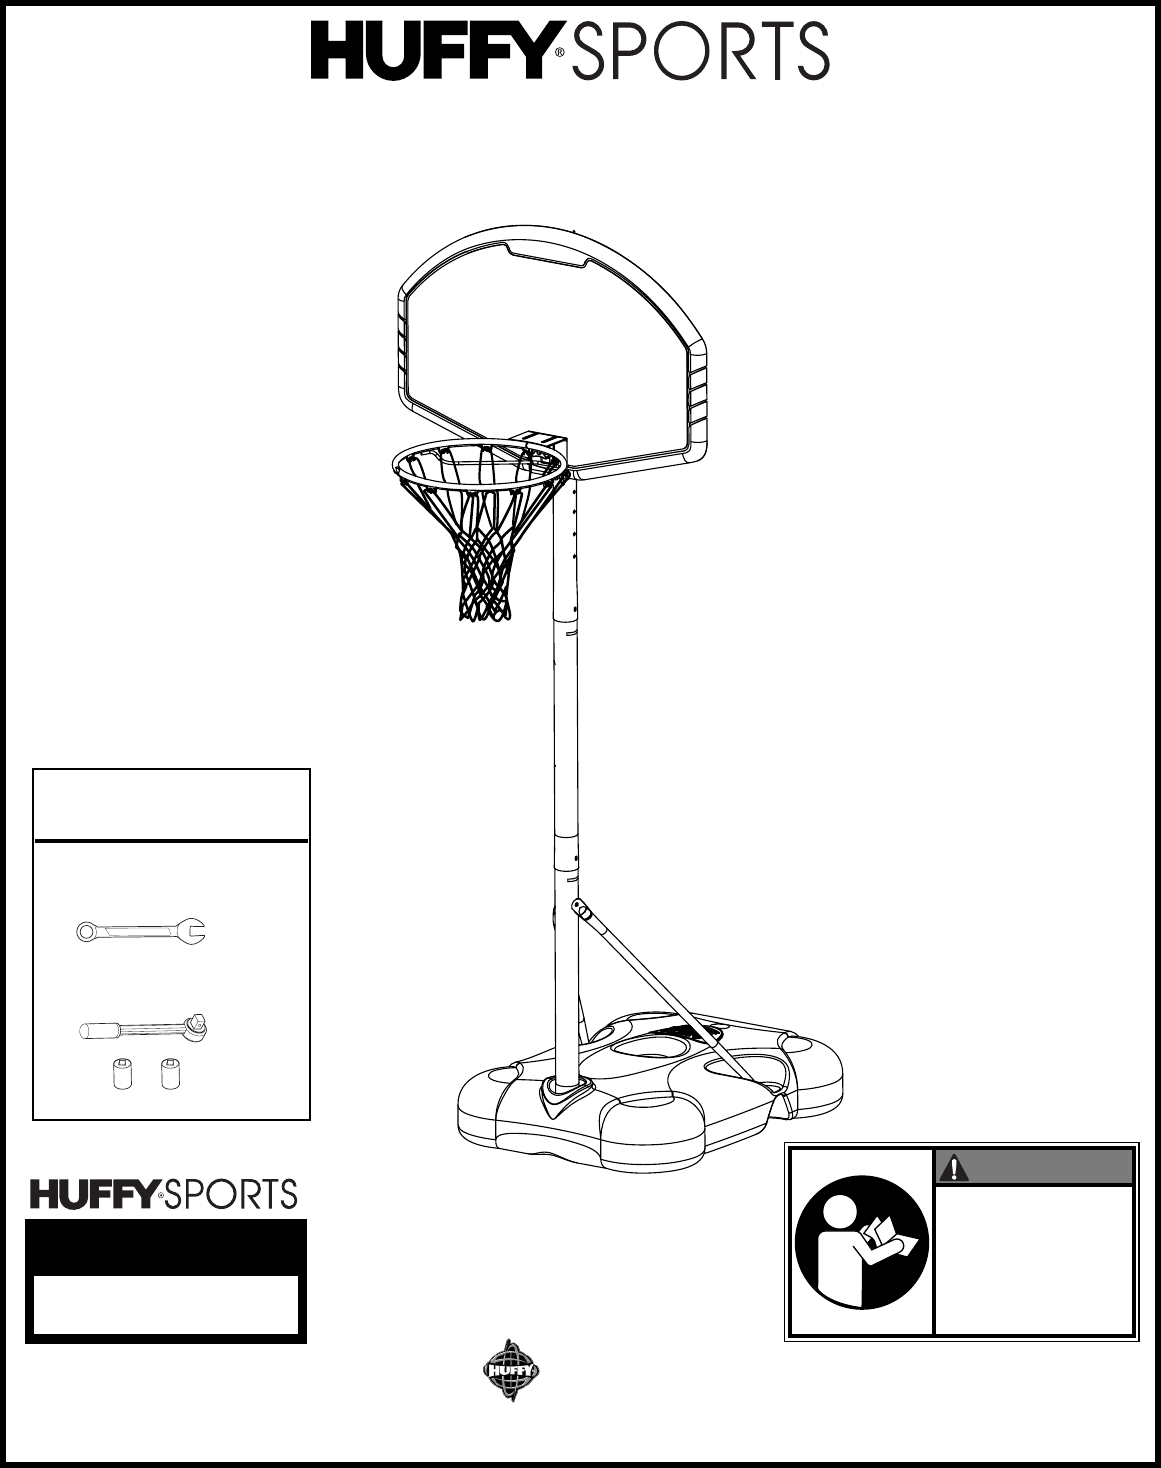 Huffy Board Games Youth Basketball System User Guide